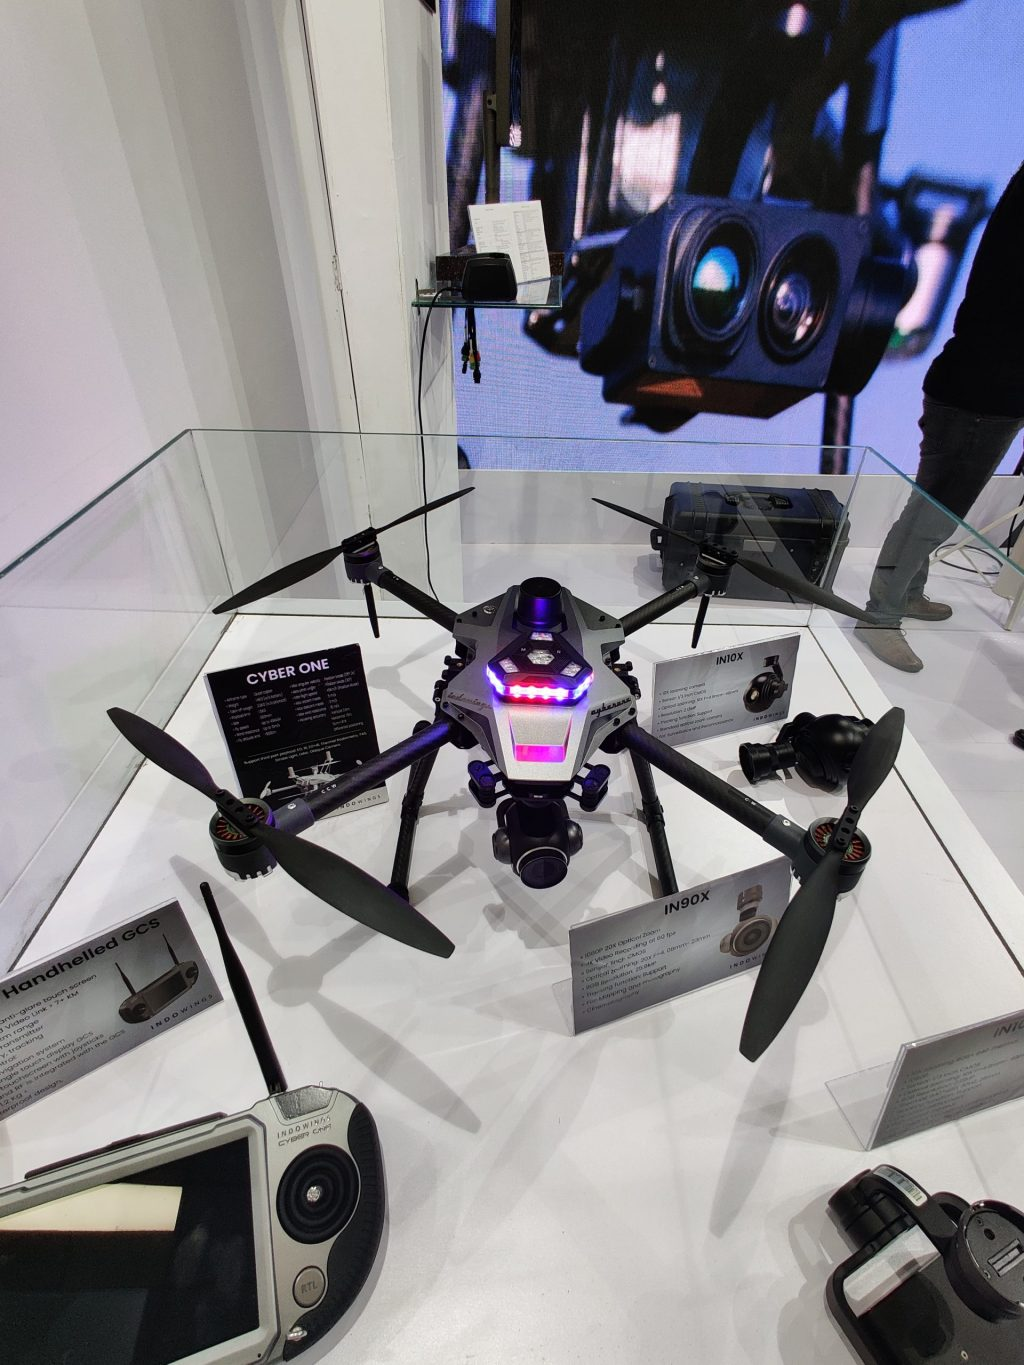 India witnesses the launch of its most advanced drone 'Cyber One'